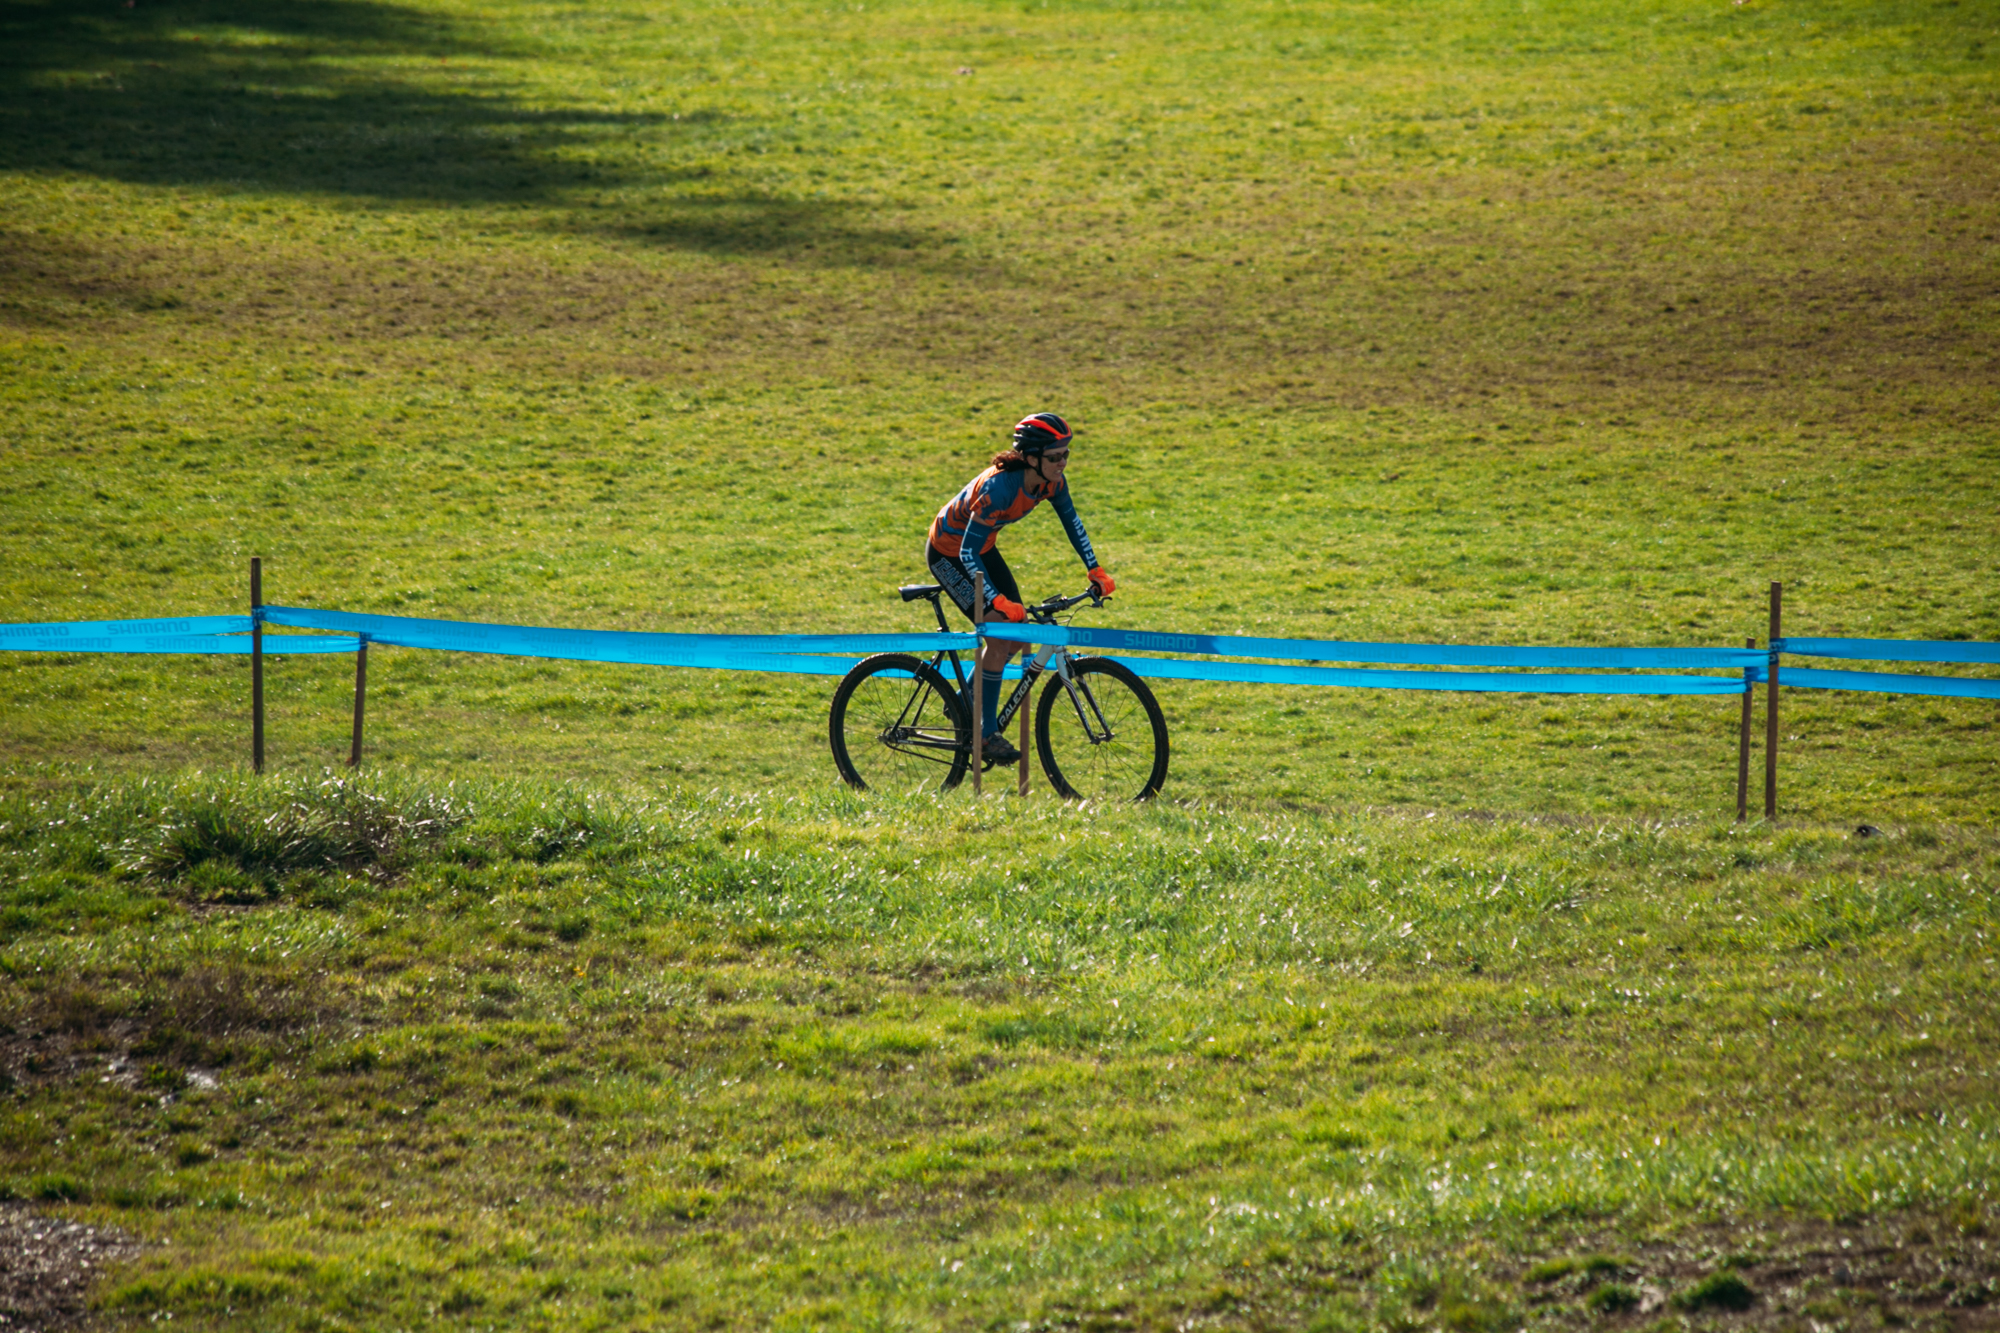 Cyclocross18_CCCX_RainierHS-114-mettlecycling.jpg